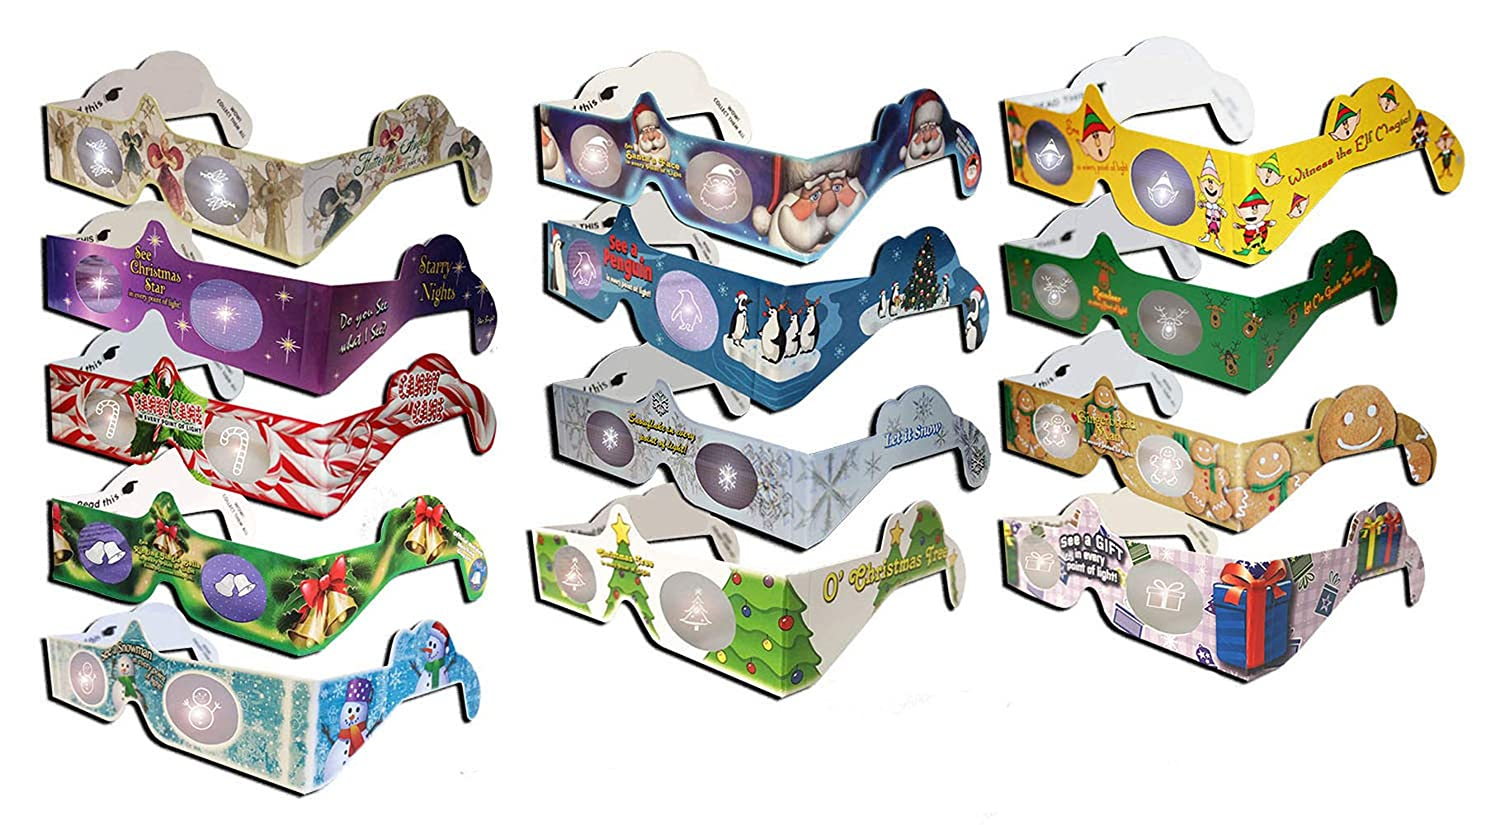 3Dstereo Holiday Eyes Ships Ships Folded /& Sleeved 12 pairs of Glasses 12 Different Styles Exclusive Jingle Bells -Turn XMAS Lights Into Magical Images